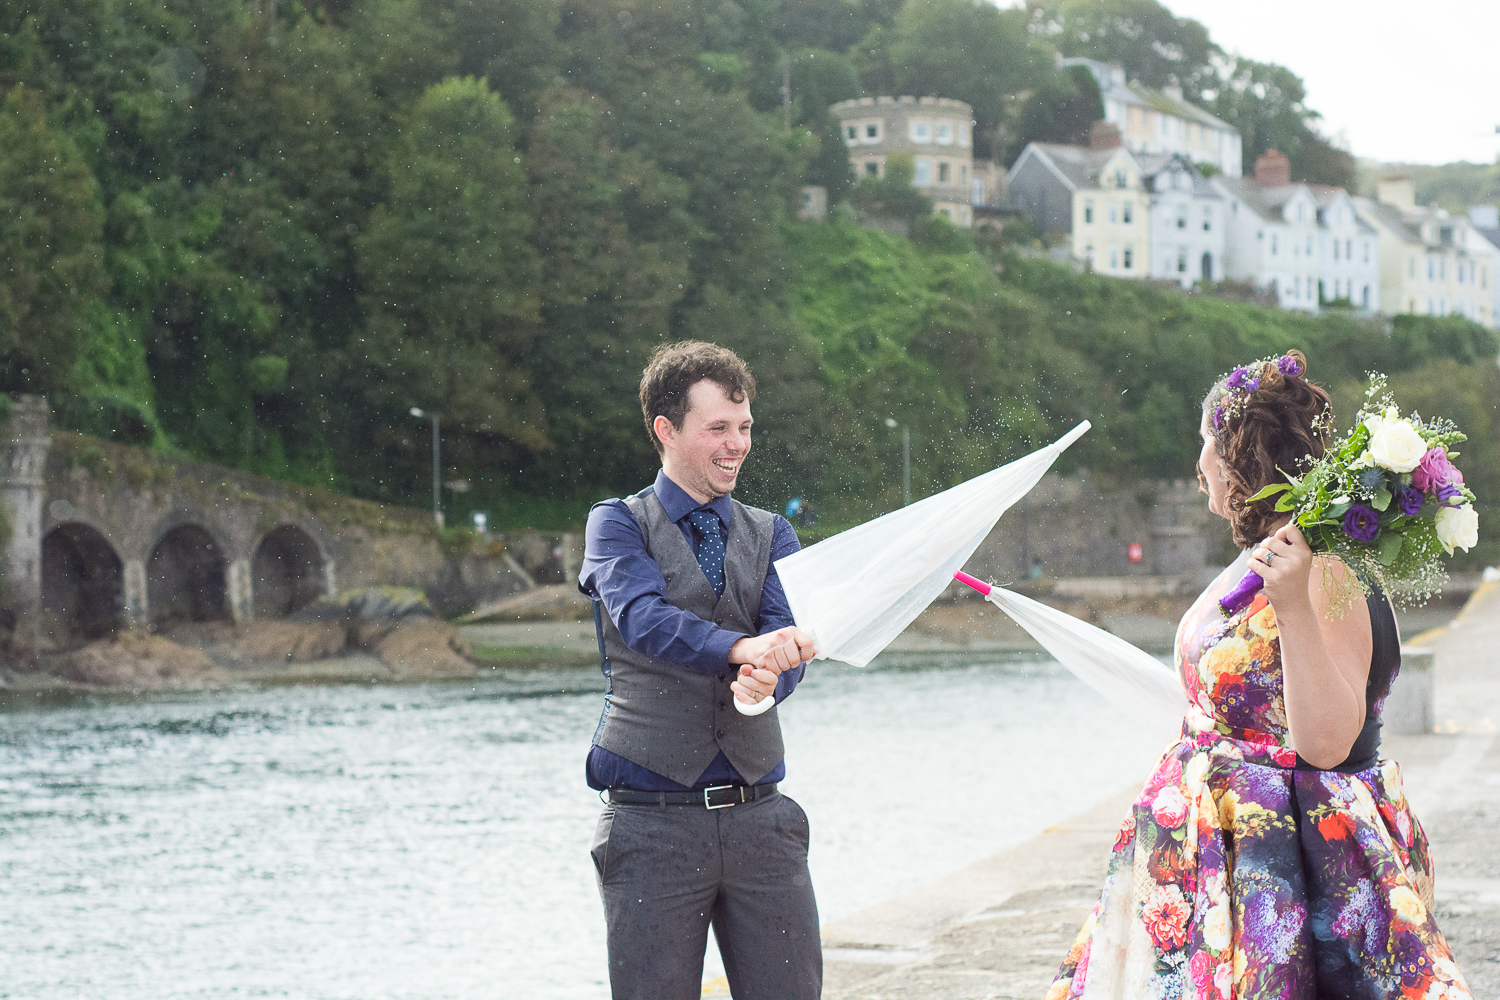 Bride and groom having a brolly fight in the rain at Looe Cornwall